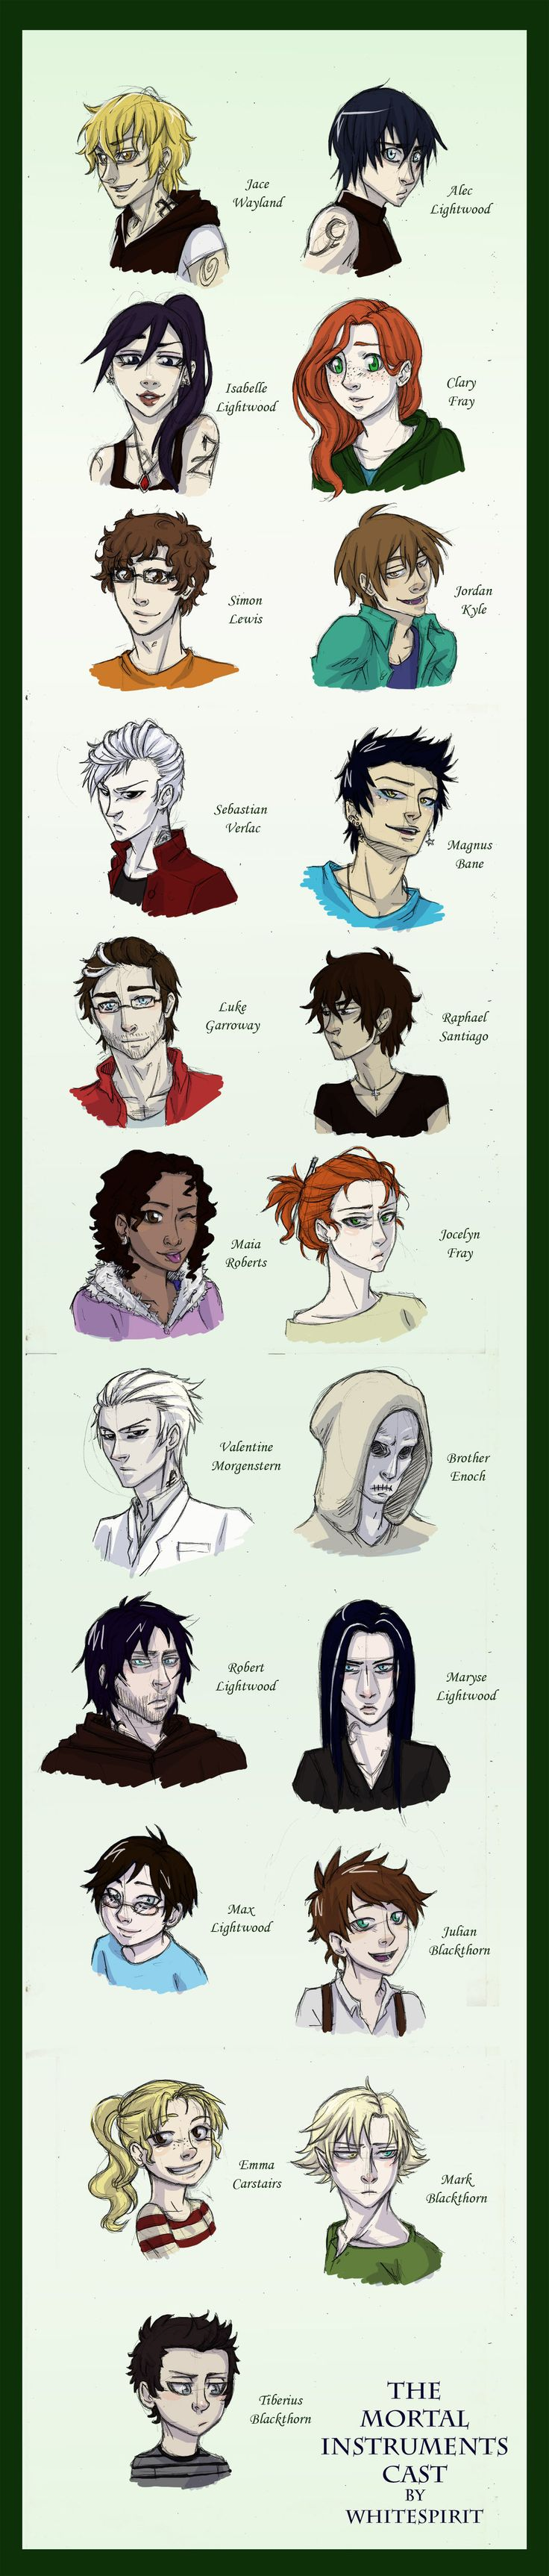 The Mortal Instruments beautiful character sketches. Am I the only one who was reminded of Percy when I saw Luke?